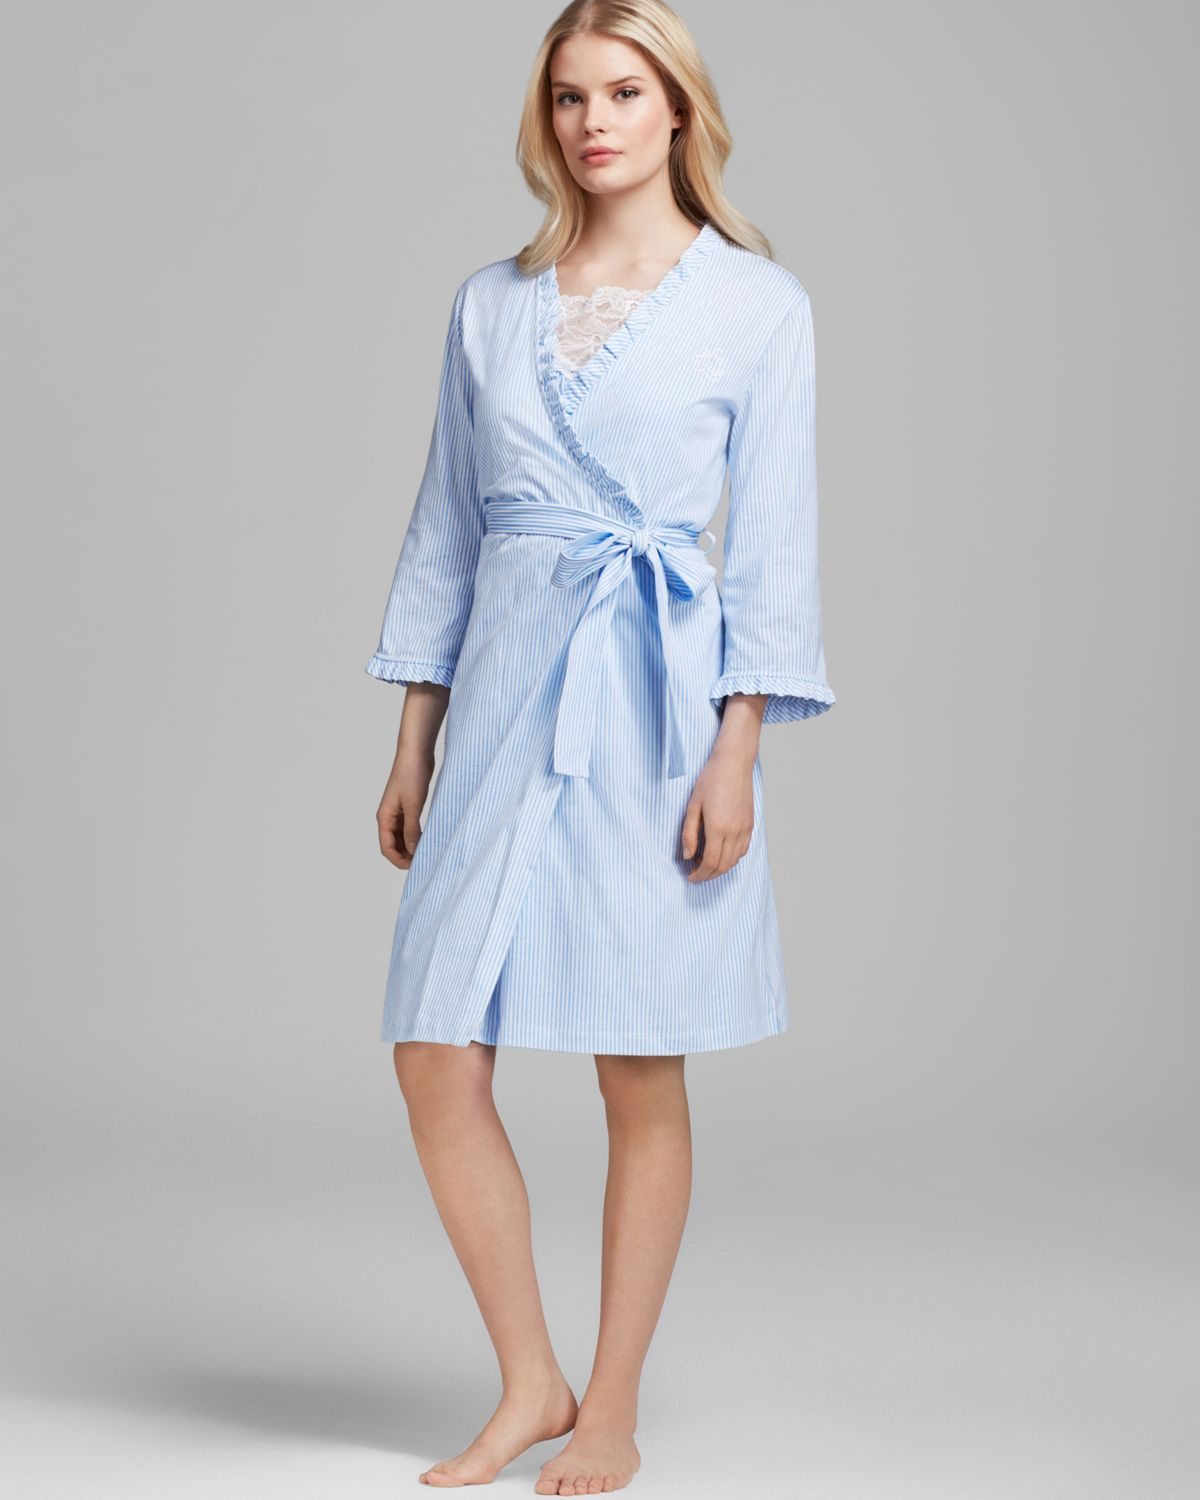 lauren by ralph lauren laurelton striped knit feminine short robe in white skylark blue white. Black Bedroom Furniture Sets. Home Design Ideas